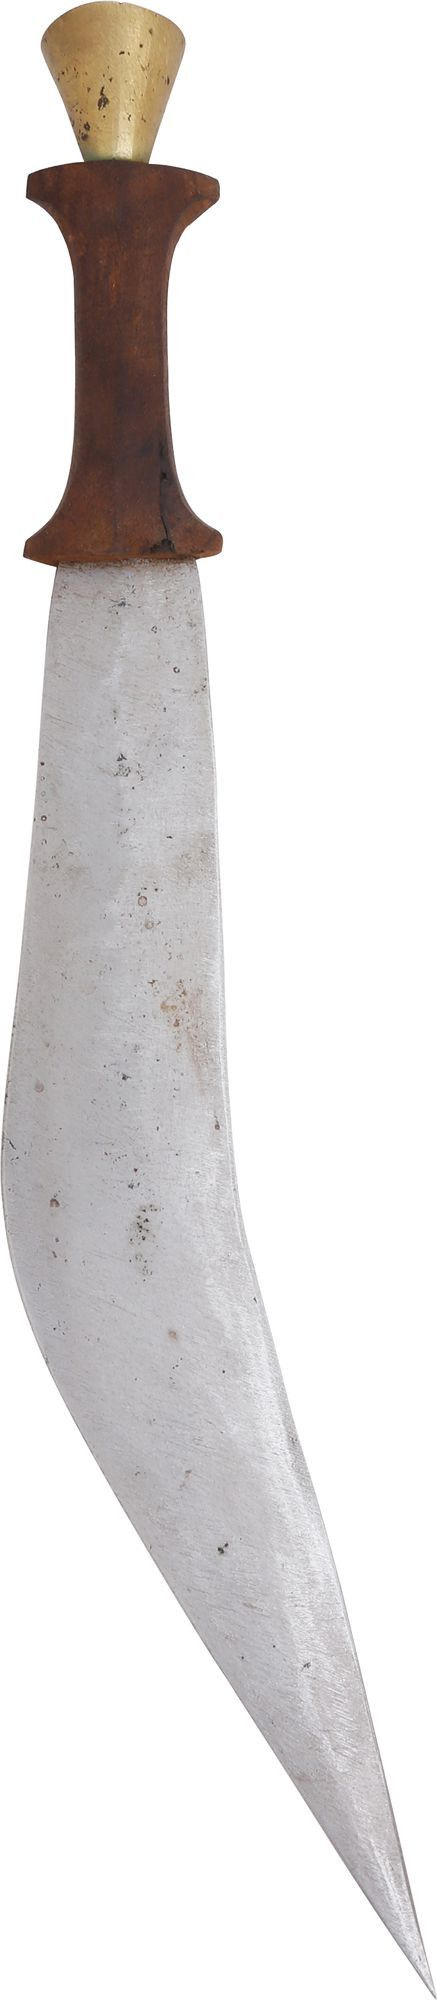 """DANKIL SWORD FROM DJIBOUTI Known as a gile or jile, and specifically associated with Djibouti. See Spring fig. 103 for a similar but plainer example. This example with 16 1/4"""" asymmetrical double edge blade said to be used for ham stringing. Carved wood hilt with expanded pommel and guard. Bronze..."""